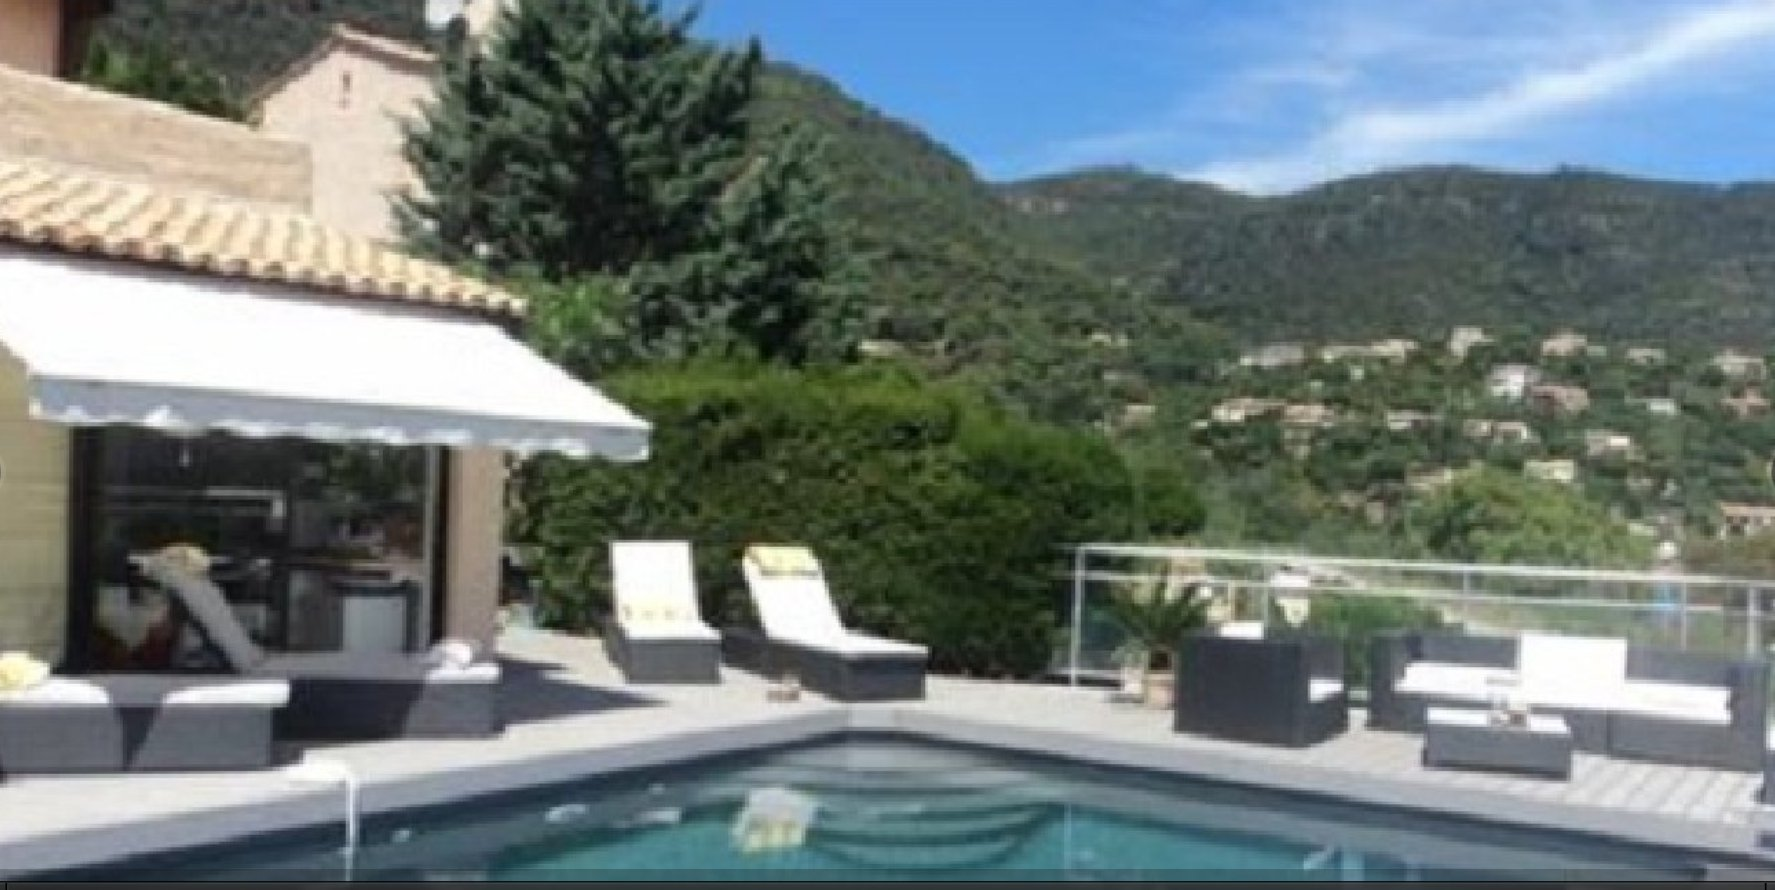 Cavalaire sur Mer, panoramic view, Villa 6 rooms, Land 650 m2